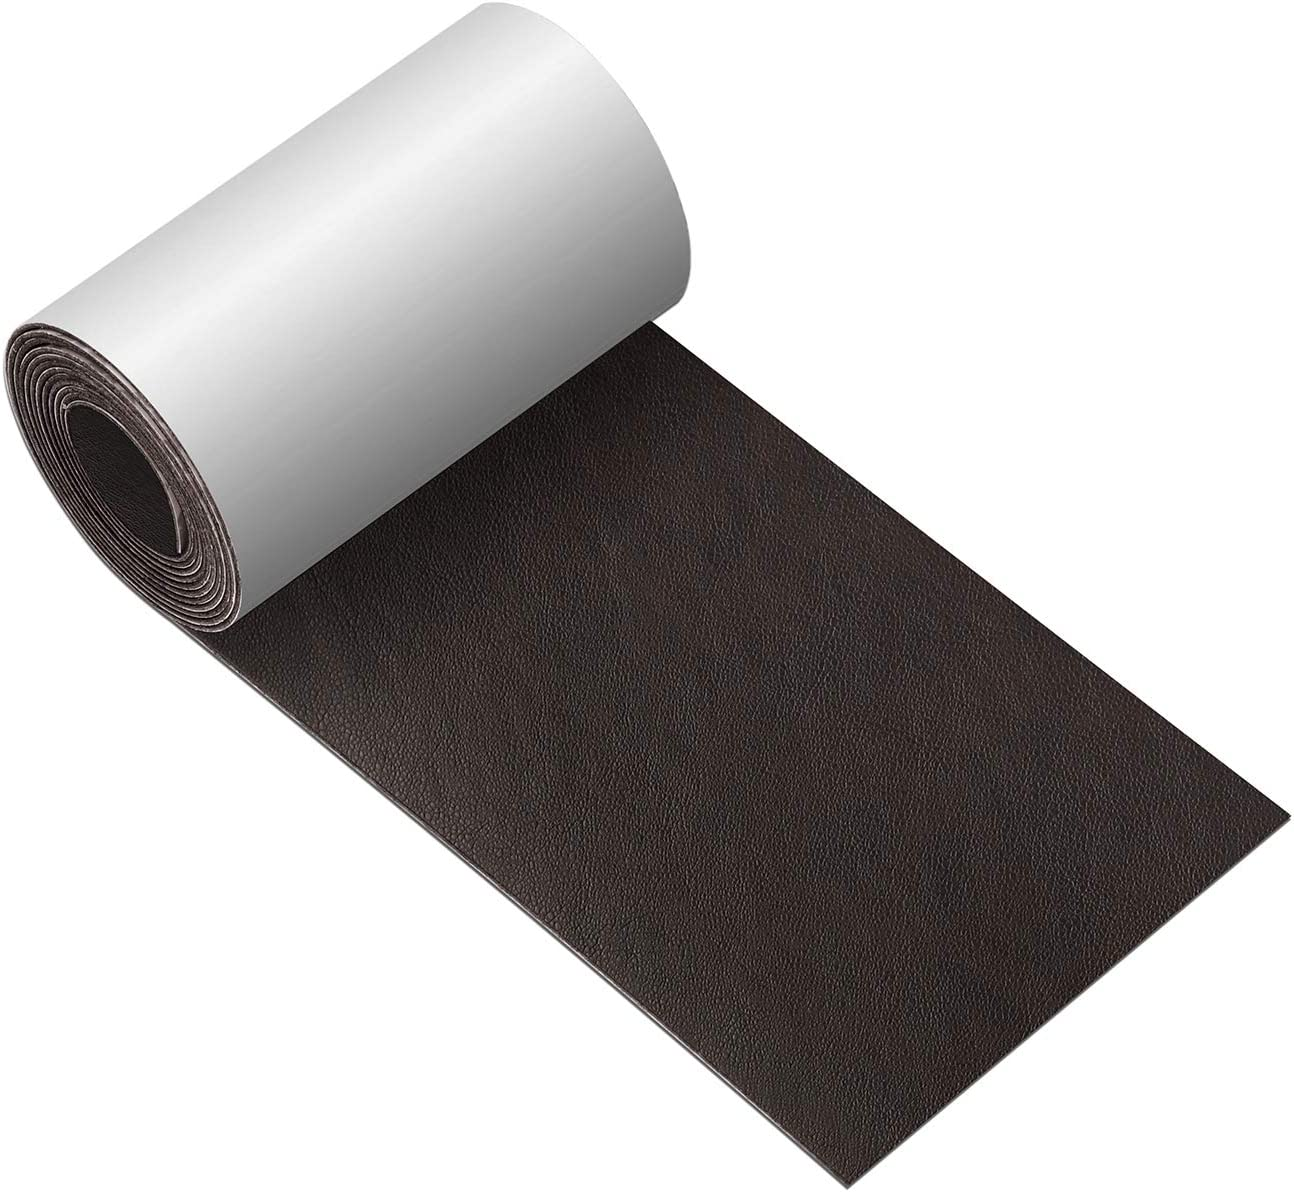 Leather Repair Tape 3X60 inch Patch Leather Adhesive for Sofas, Car Seats, Handbags, Jackets,First Aid Patch (Dark Brown No.3)